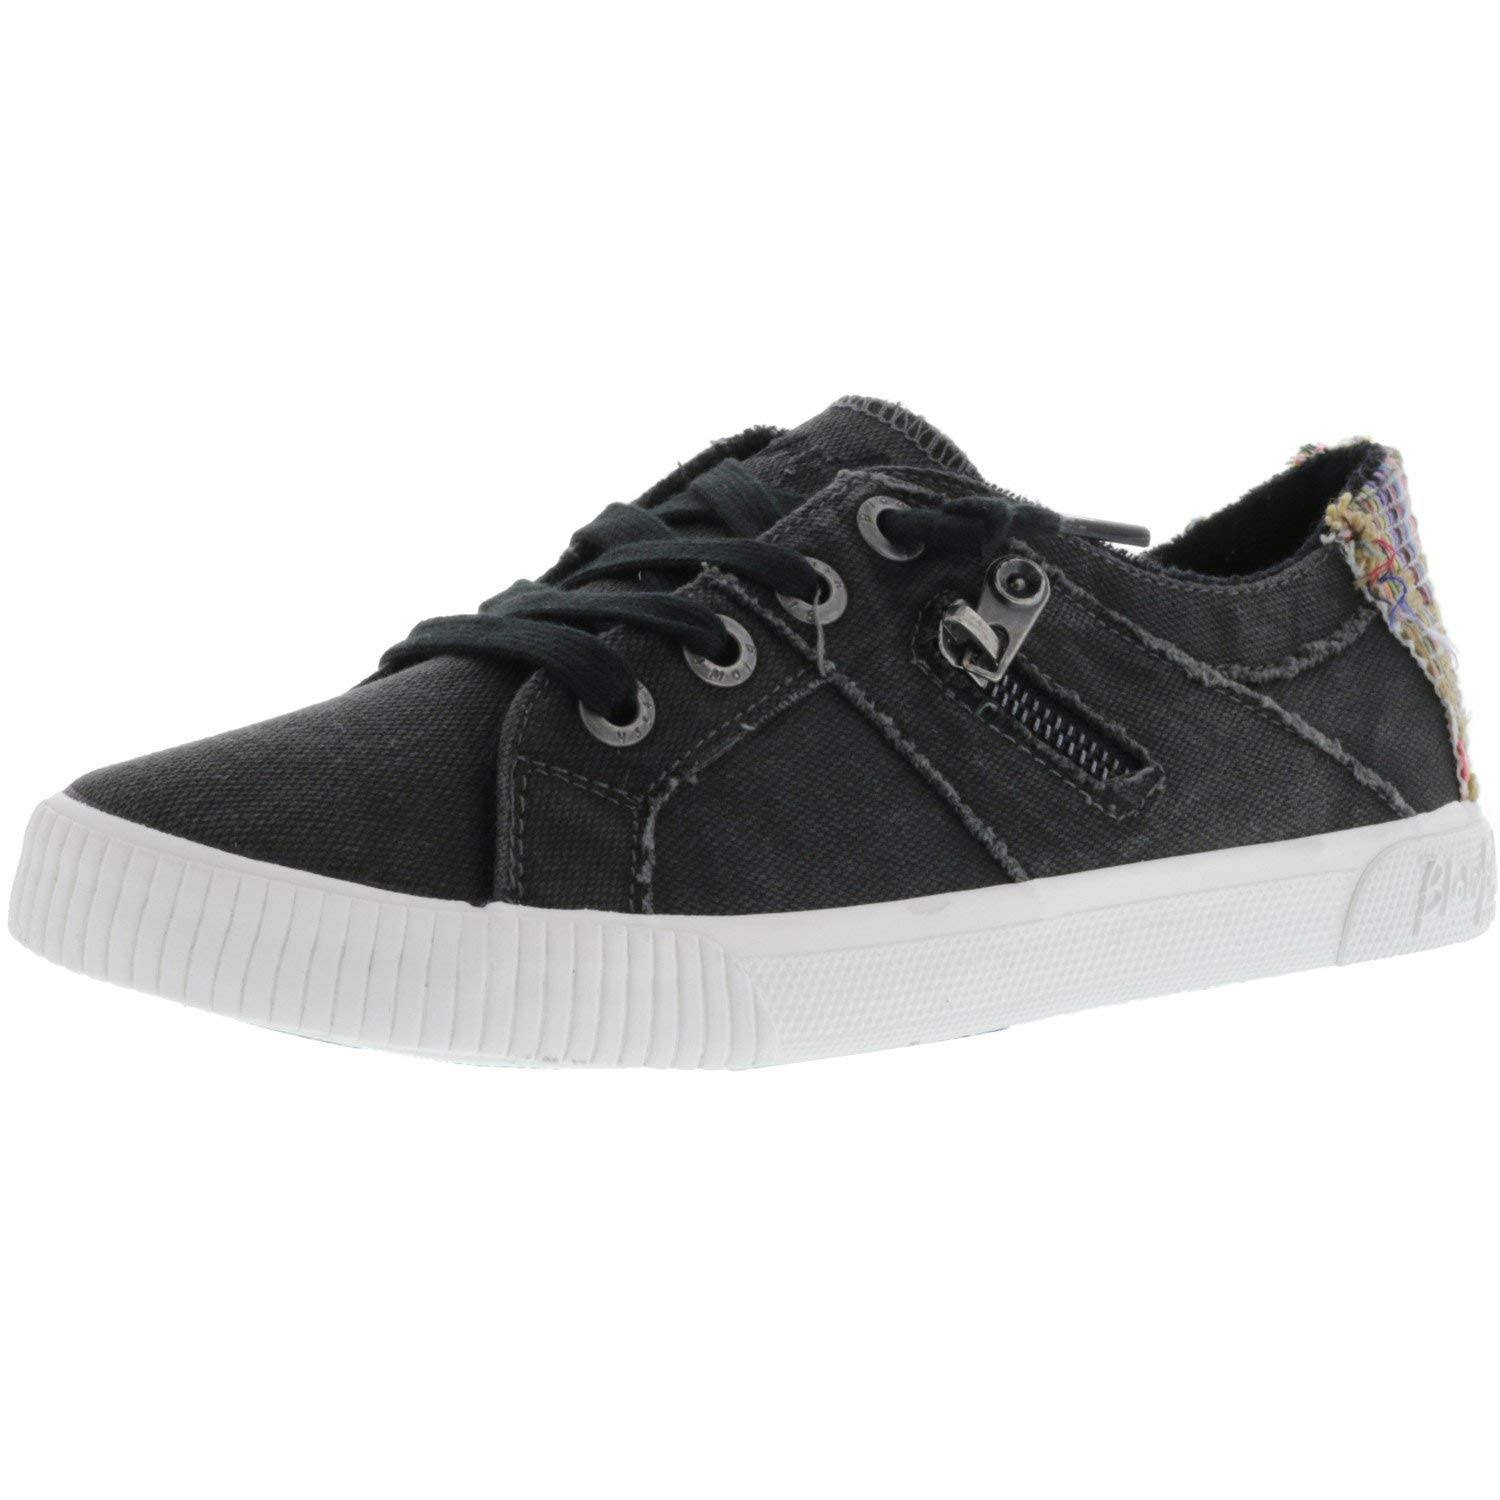 Blowfish Women's Fruit Sneakers - Black Smoked Canvas, Size 8